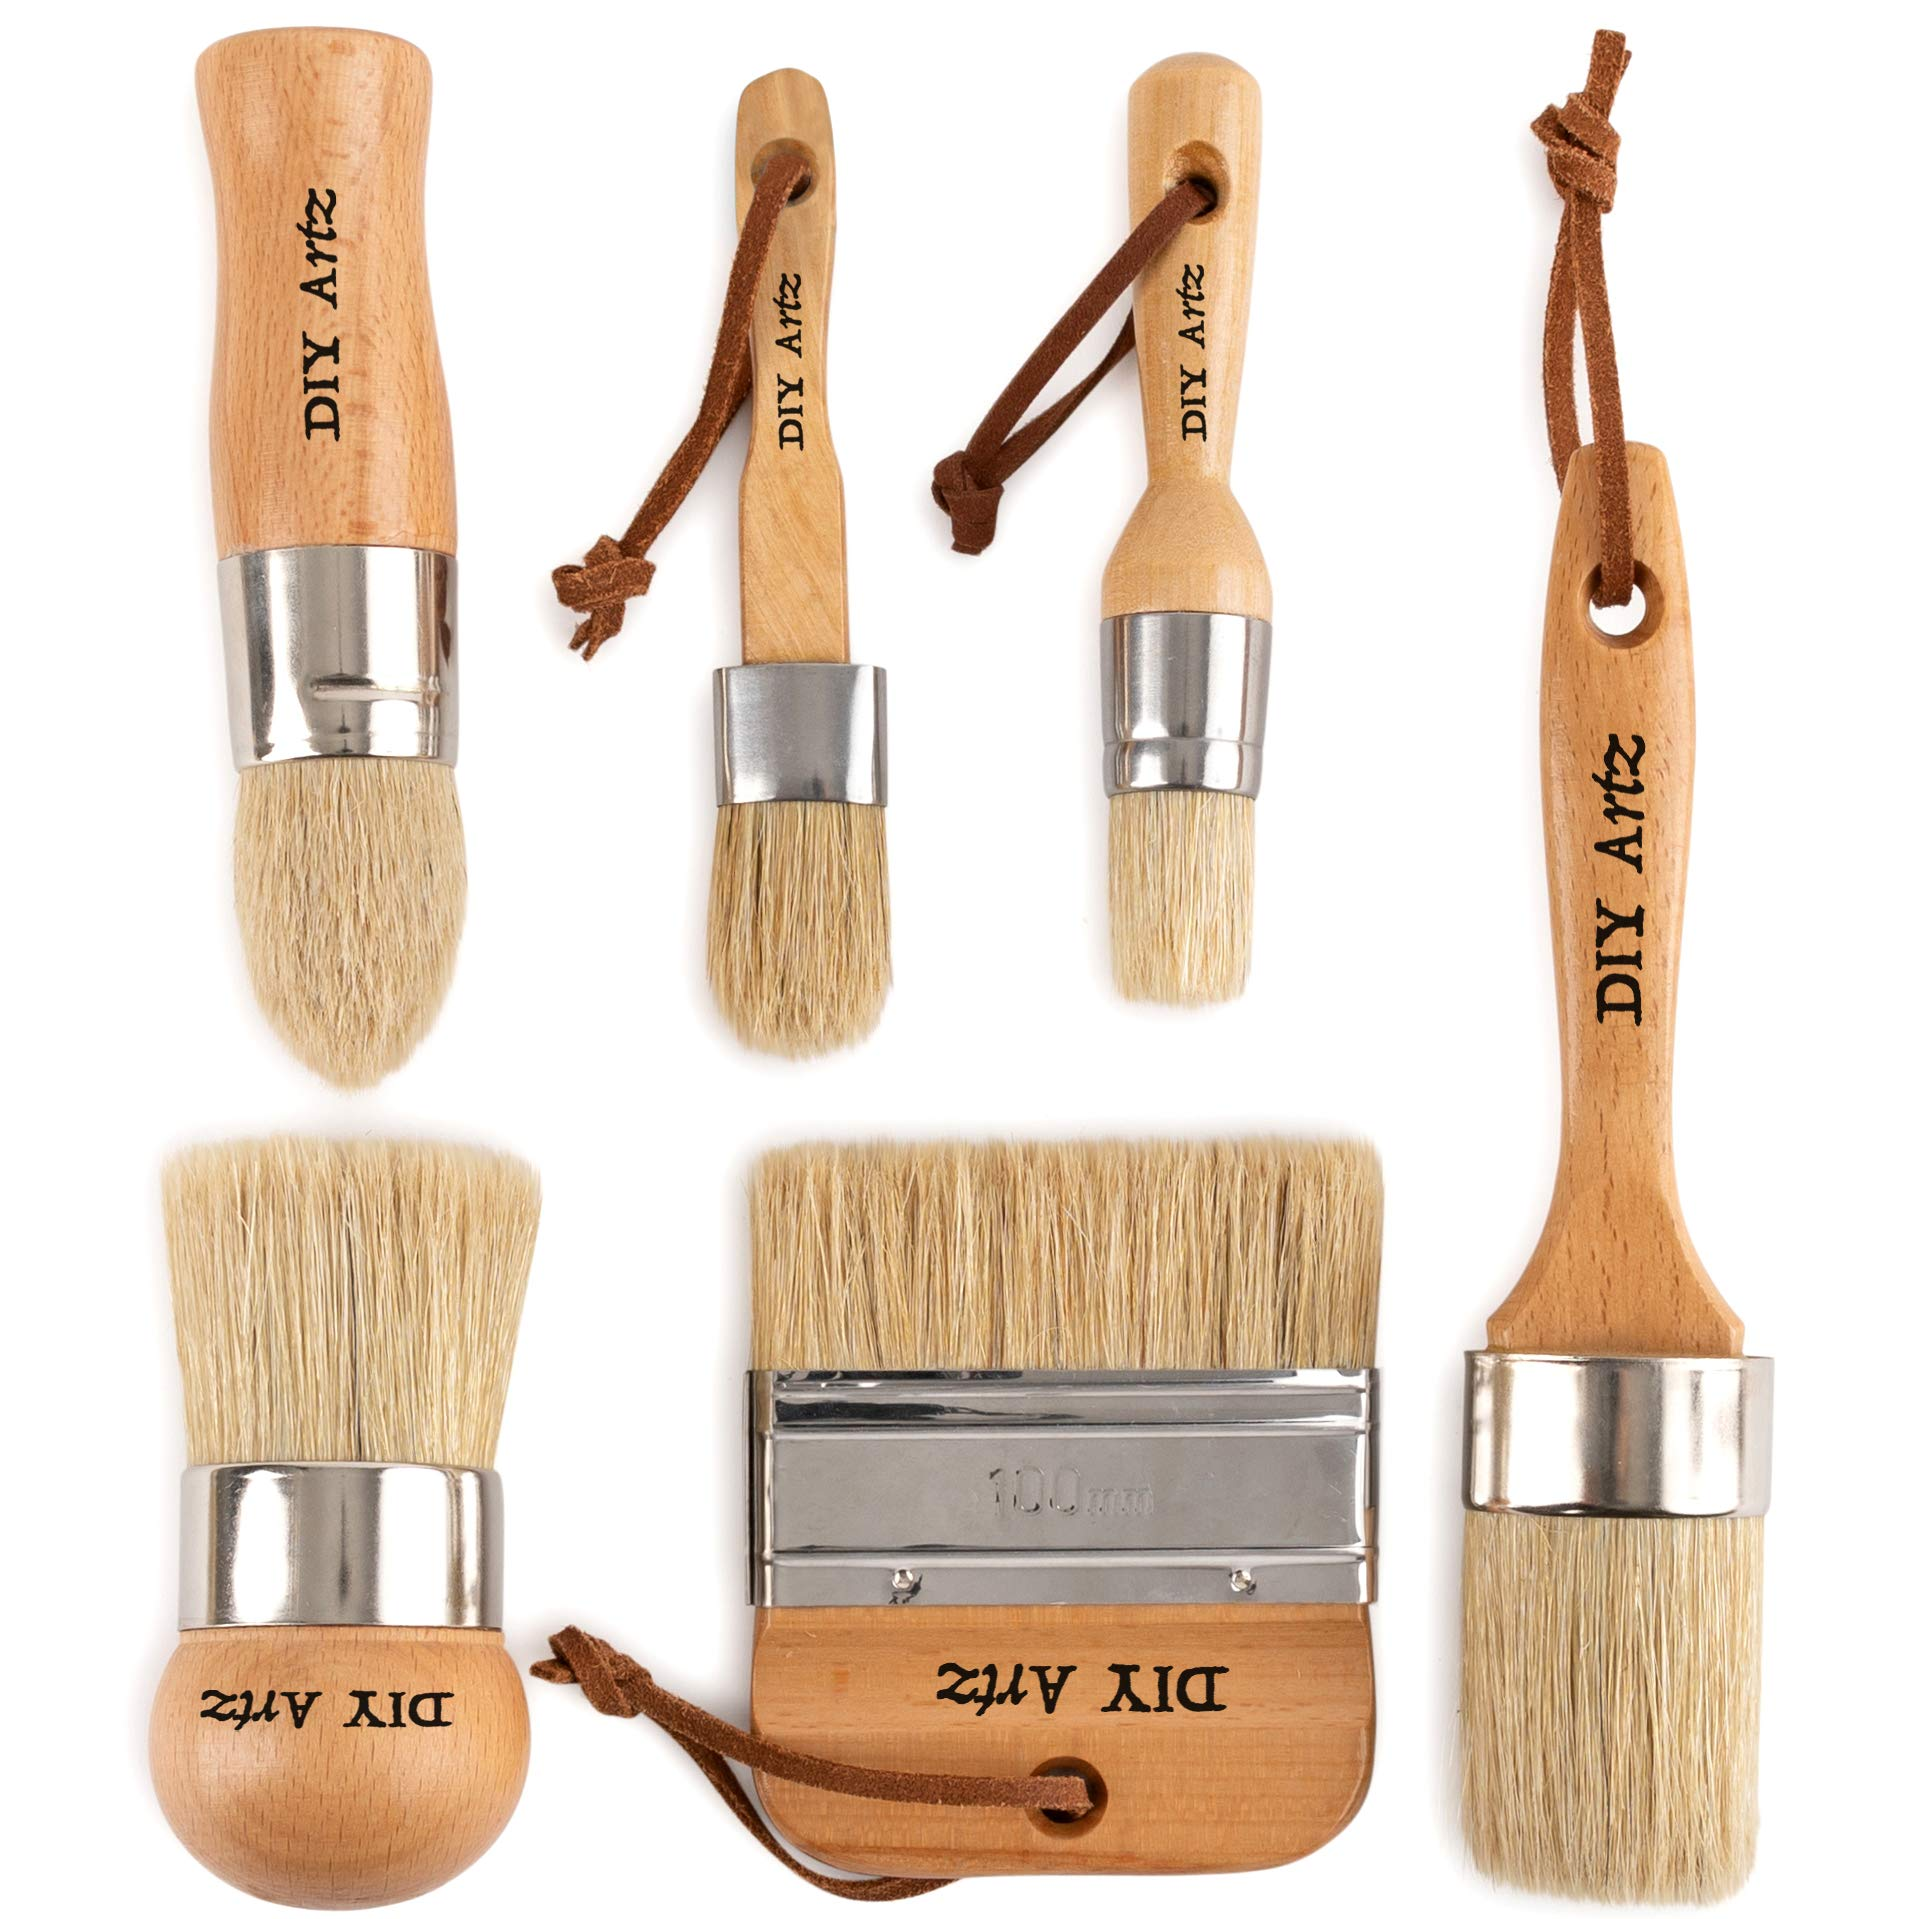 DIYARTZ Chalk & Wax Paint Brush (Set of 6) for Waxing & Painting Projects – 100% Natural Boar Bristles, Ergonomic Handles, Minimum Shedding – Smooth Coverage for Furniture, Milk Paint & Stencil